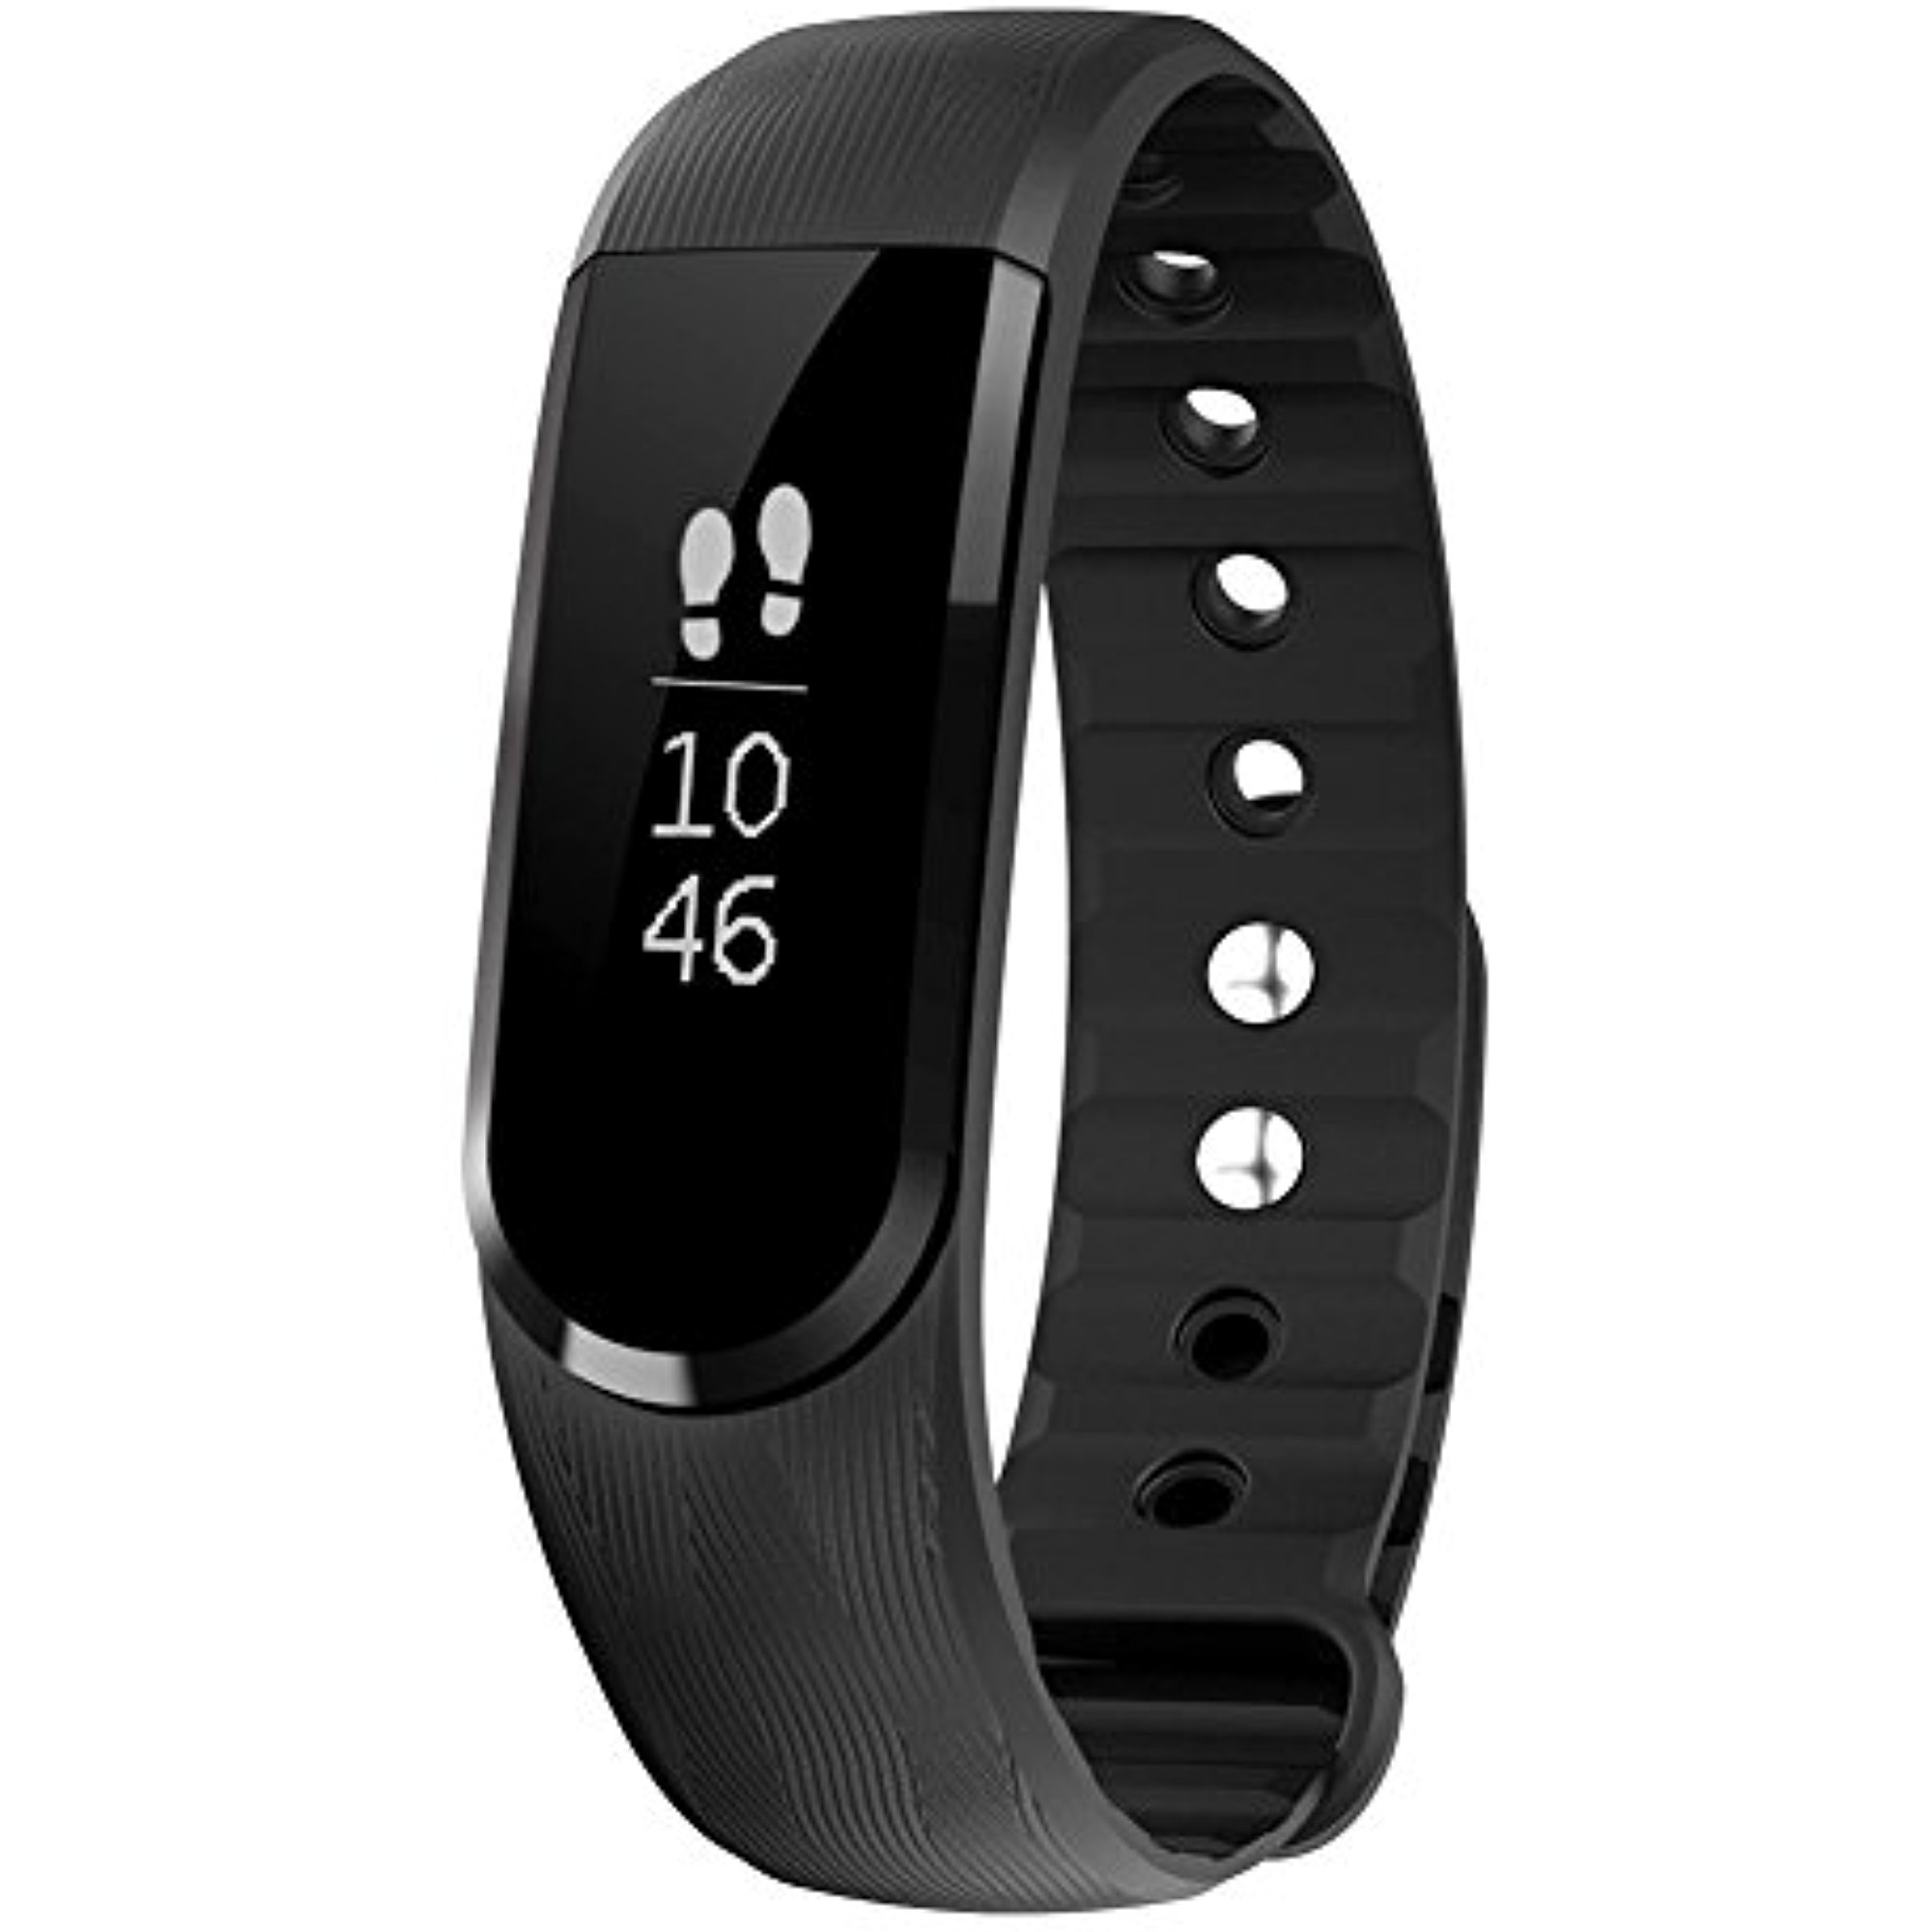 LETSCOM Fitness Tracker Wristbands, Bluetooth 4.0 IP70 Waterproof OLED Touch Screen Smart Band ...